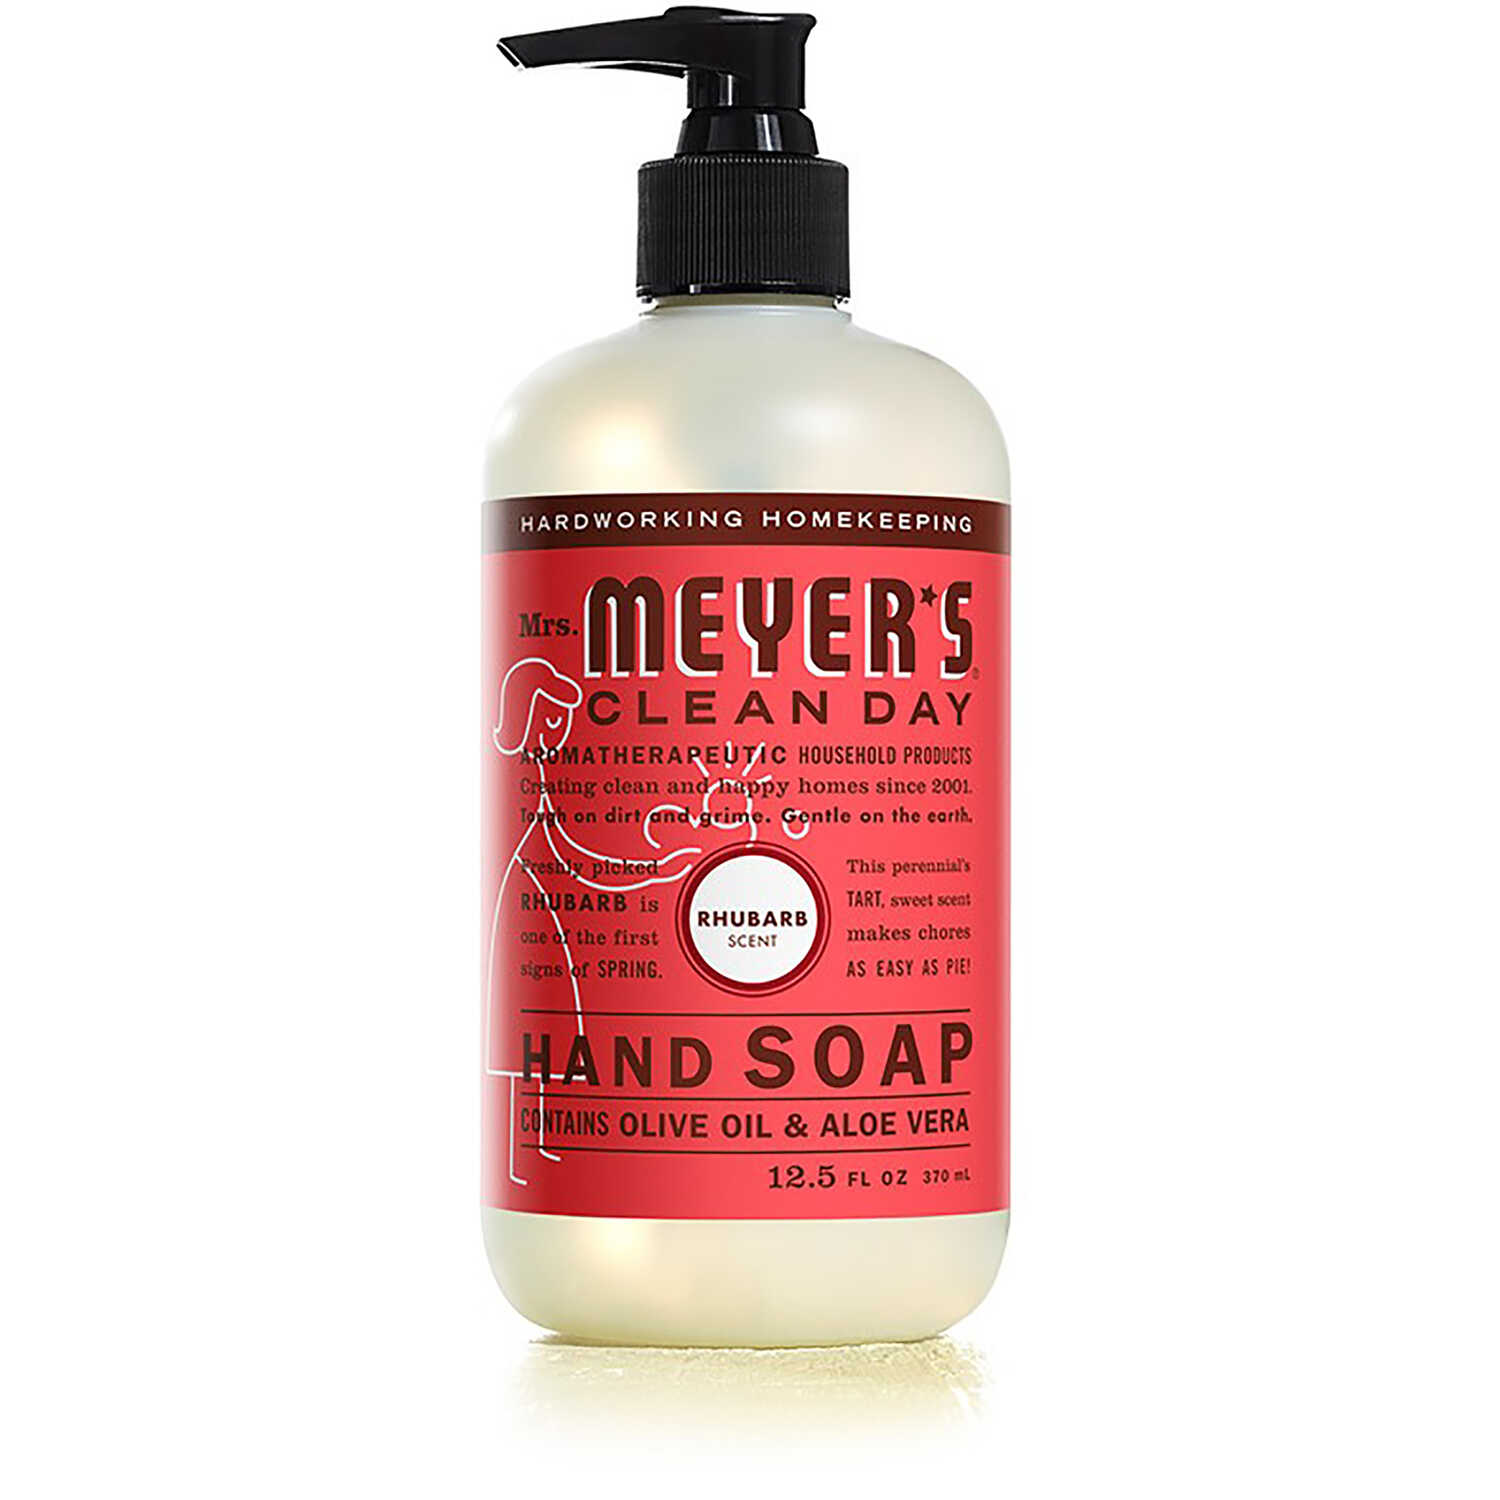 Mrs. Meyer's  Clean Day  Organic Rhubarb Scent Liquid Hand Soap  12.5 oz.